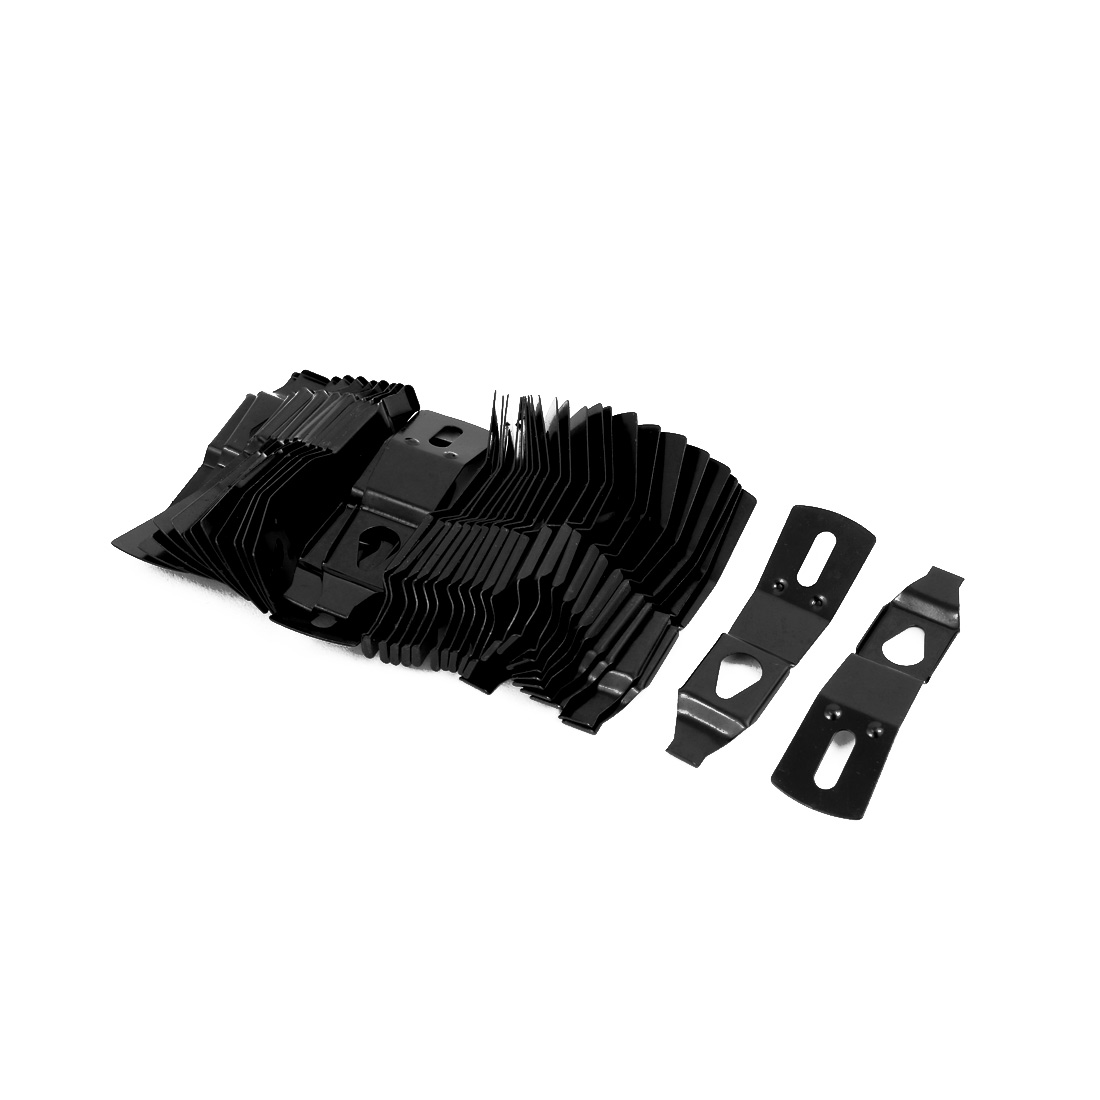 Uxcell 52.5mmx15mmx7.7mm Picture Photo Frame Metal Spring Turn Clip Hanger Black 40pcs - image 2 of 2